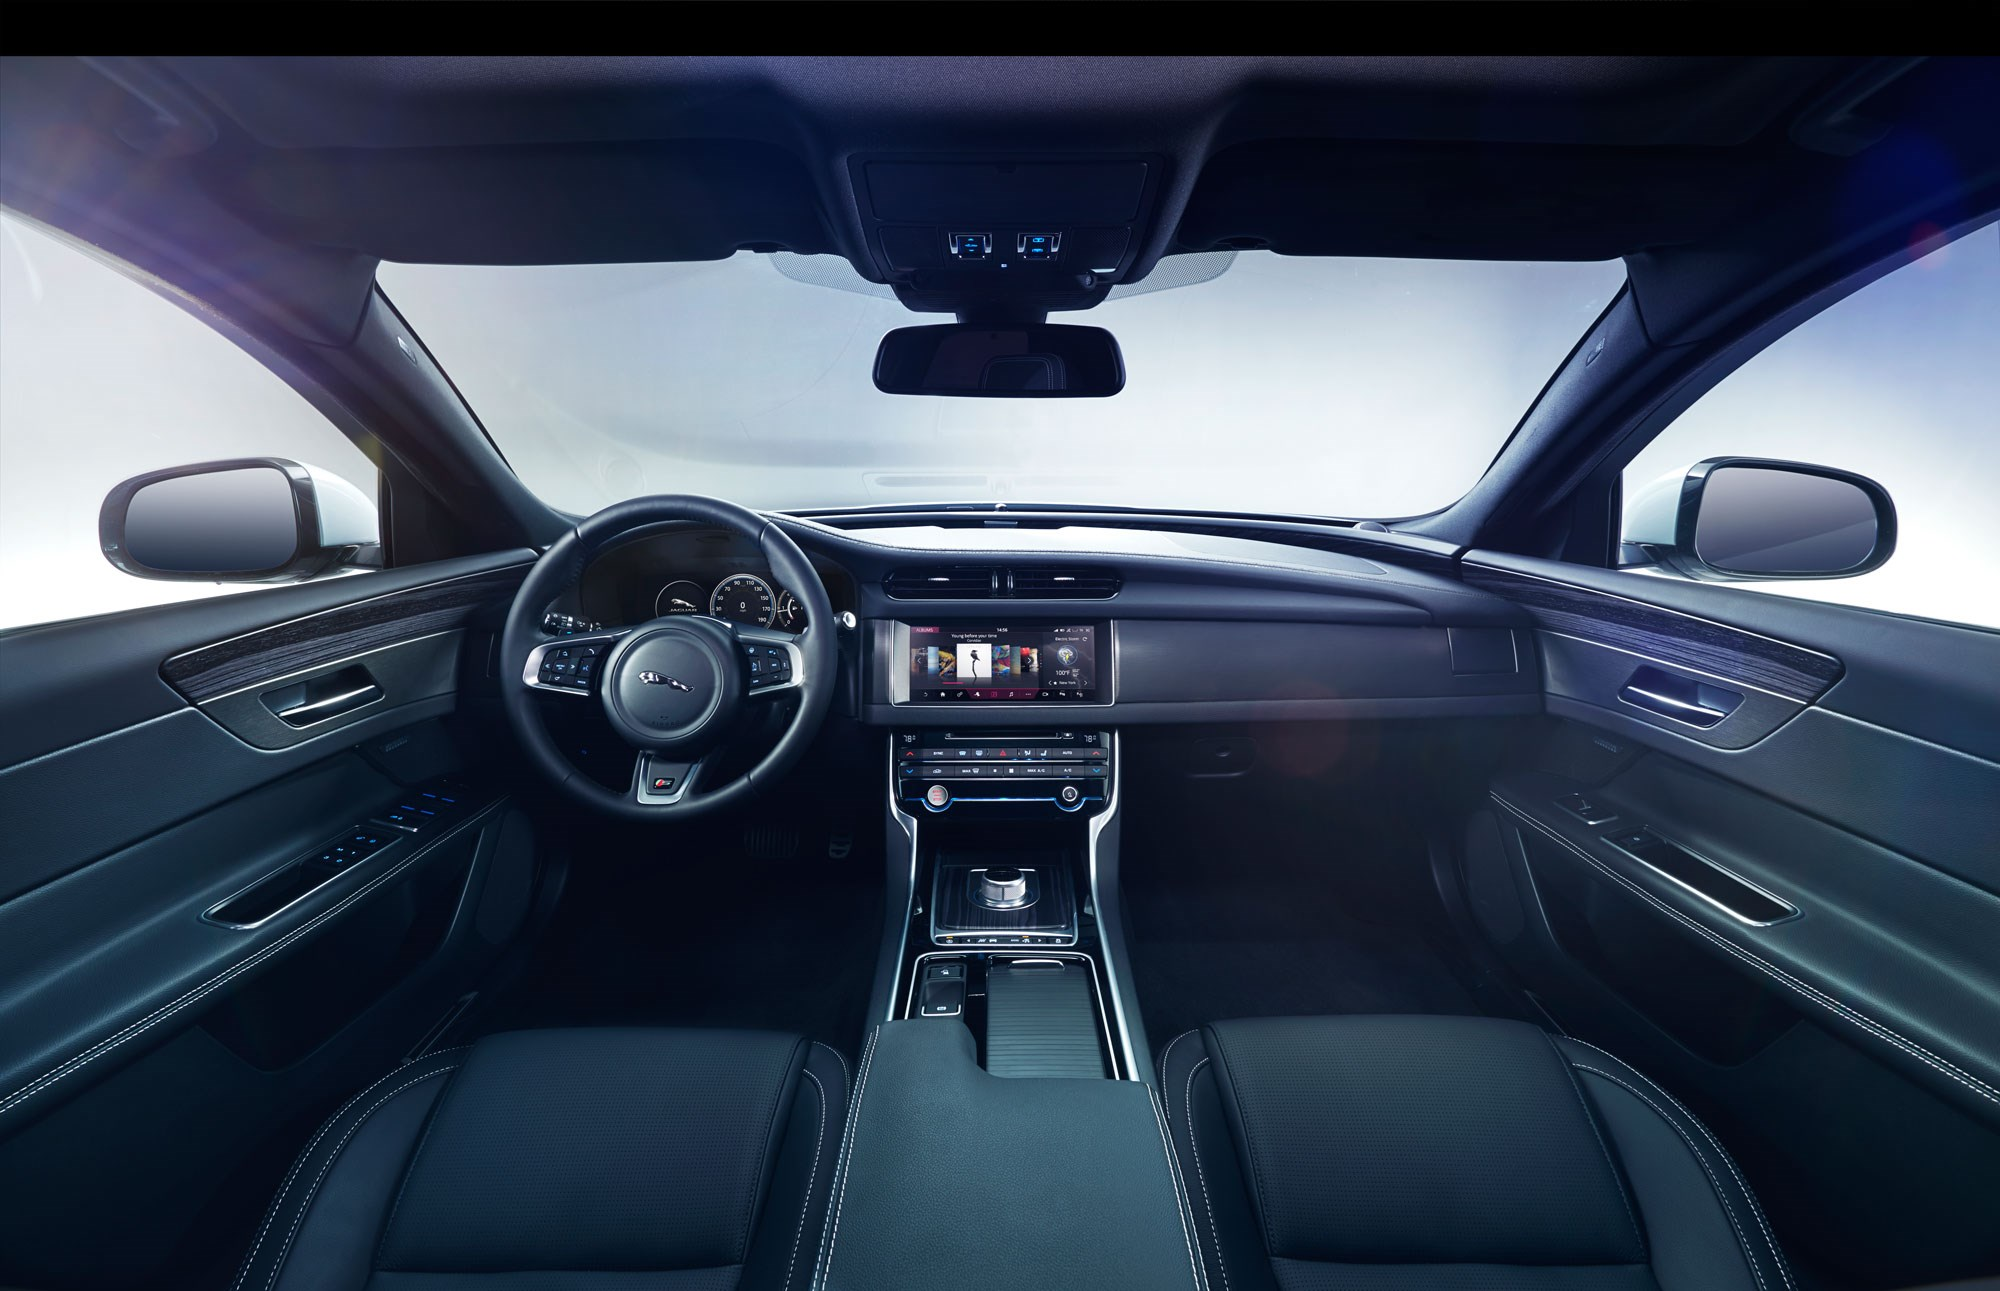 First official look inside the new jaguar xf interior